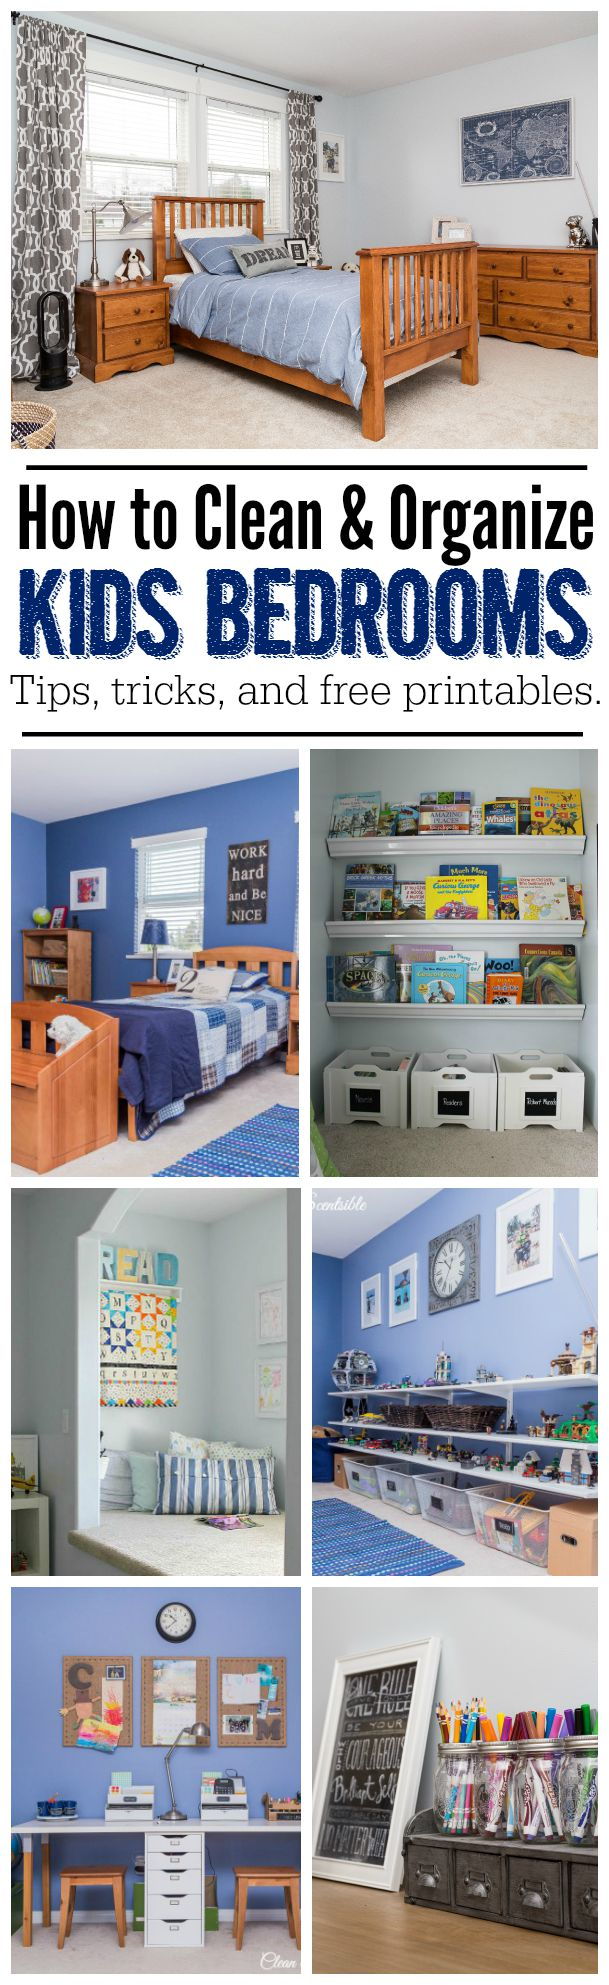 Organize Bedroom How To Organize Kids Bedrooms Clean And Scentsible